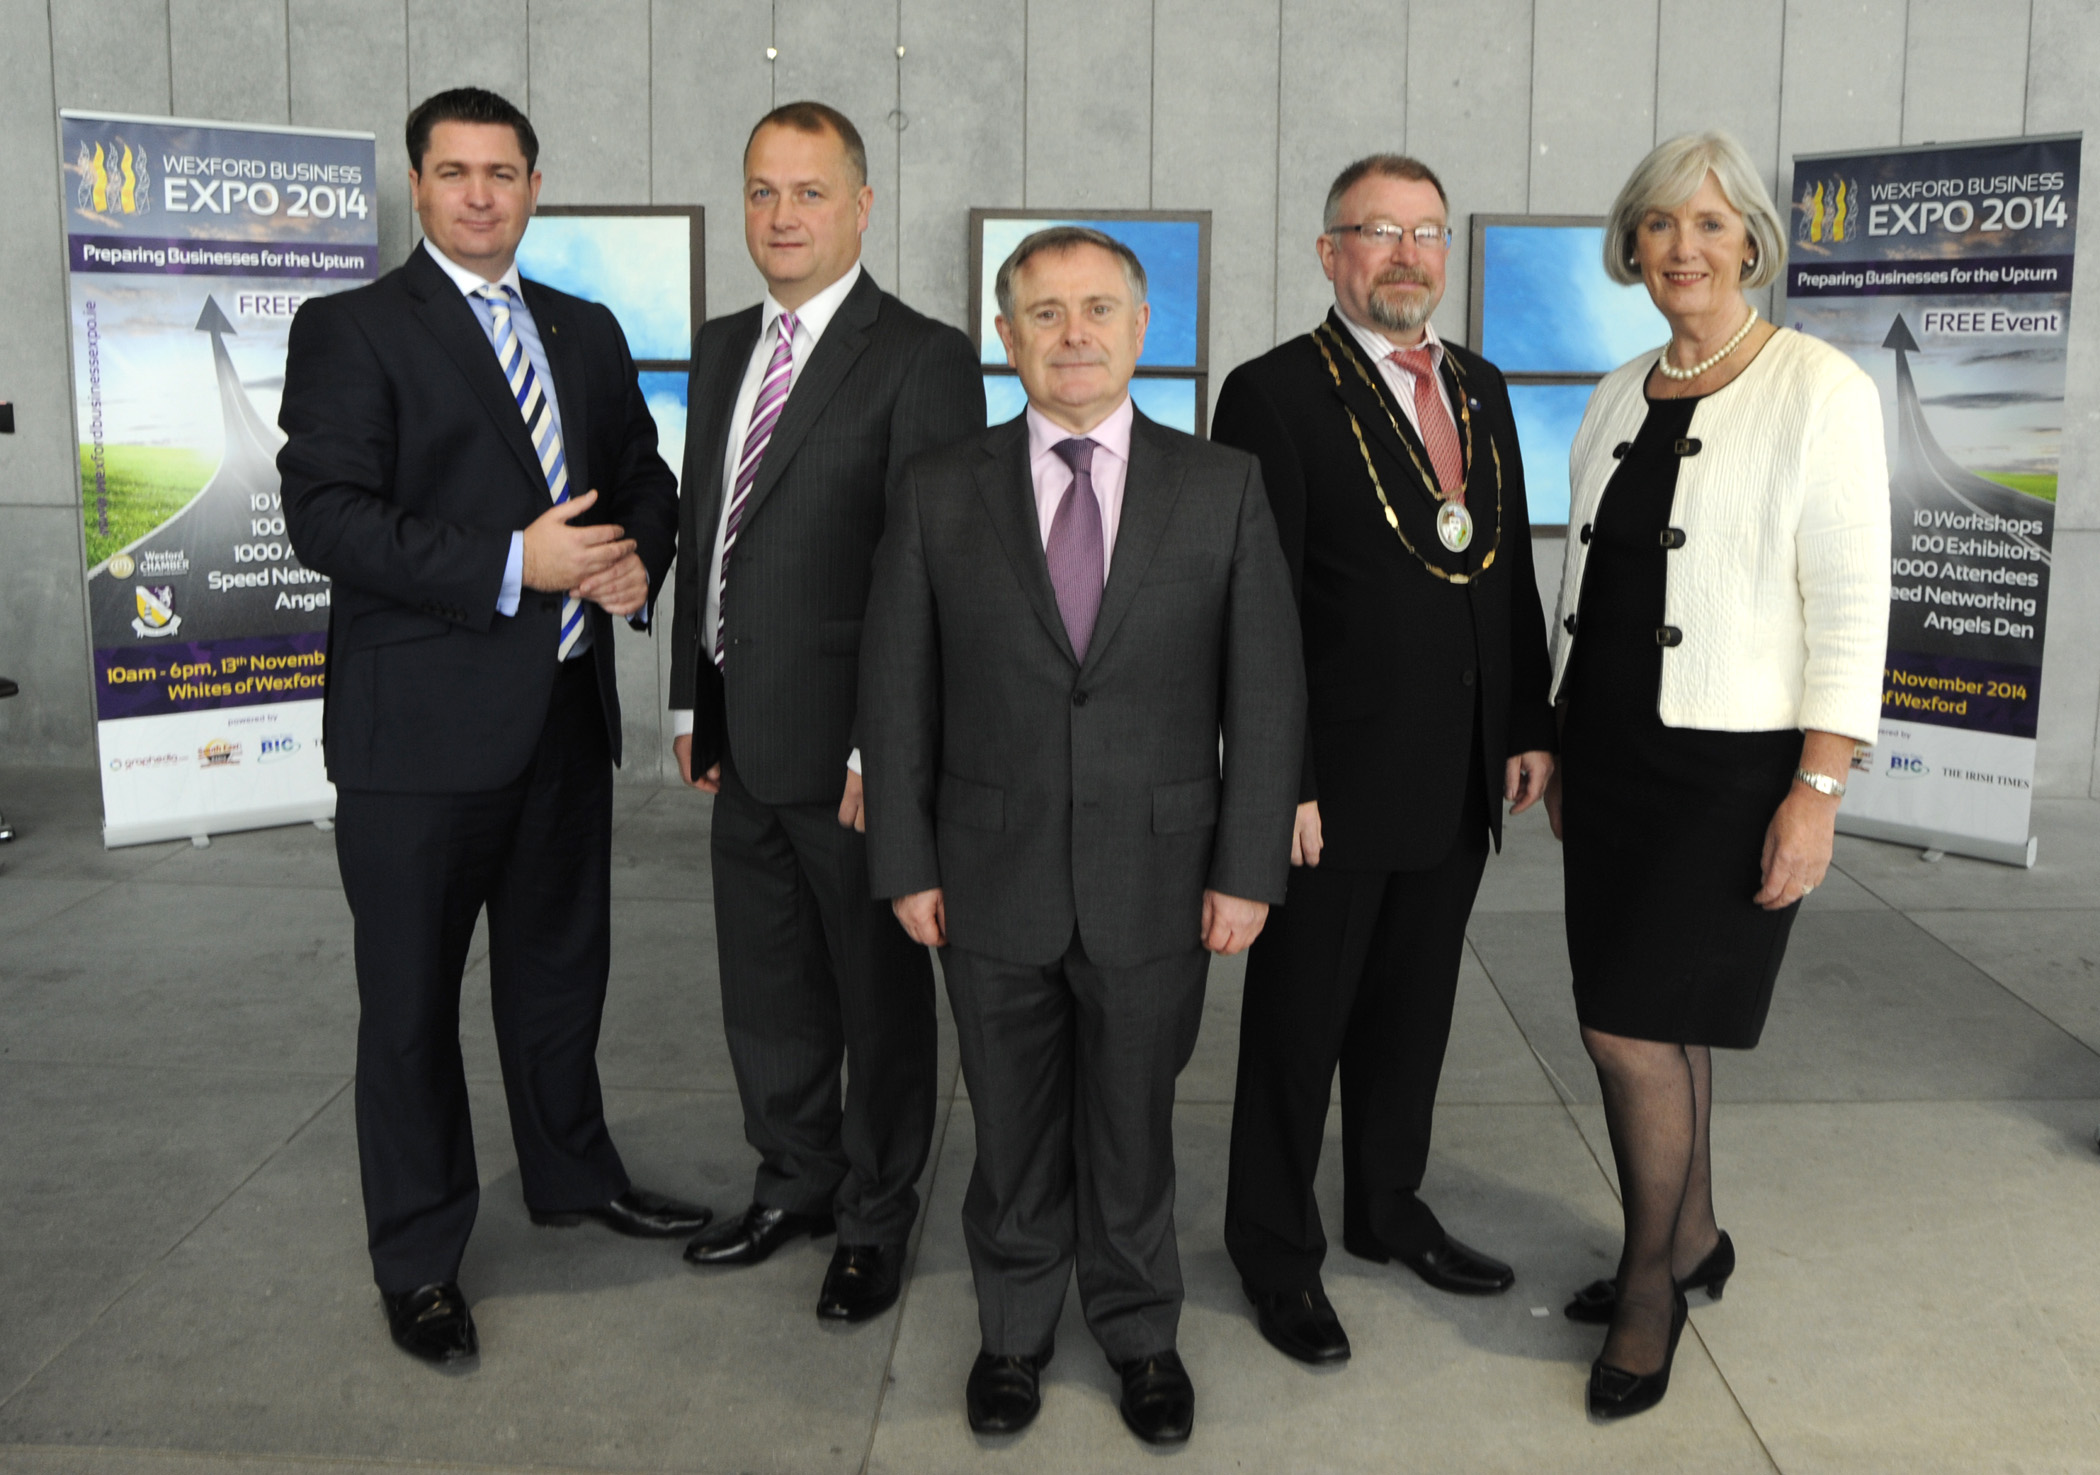 Launch of 2014 Wexford Business Expo (2)